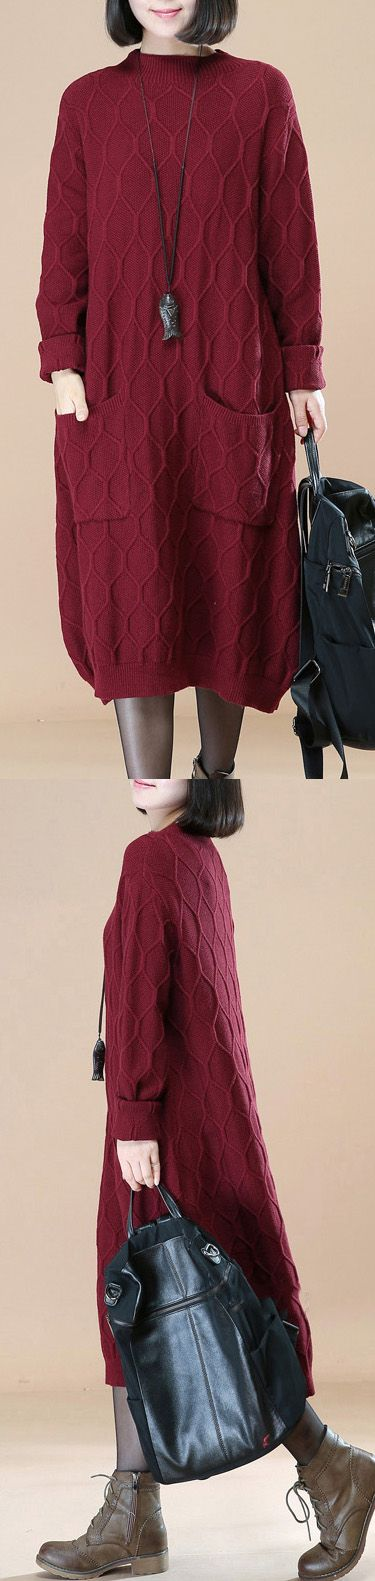 burgundy sweater dress Loose fitting pullover sweater boutique sweater